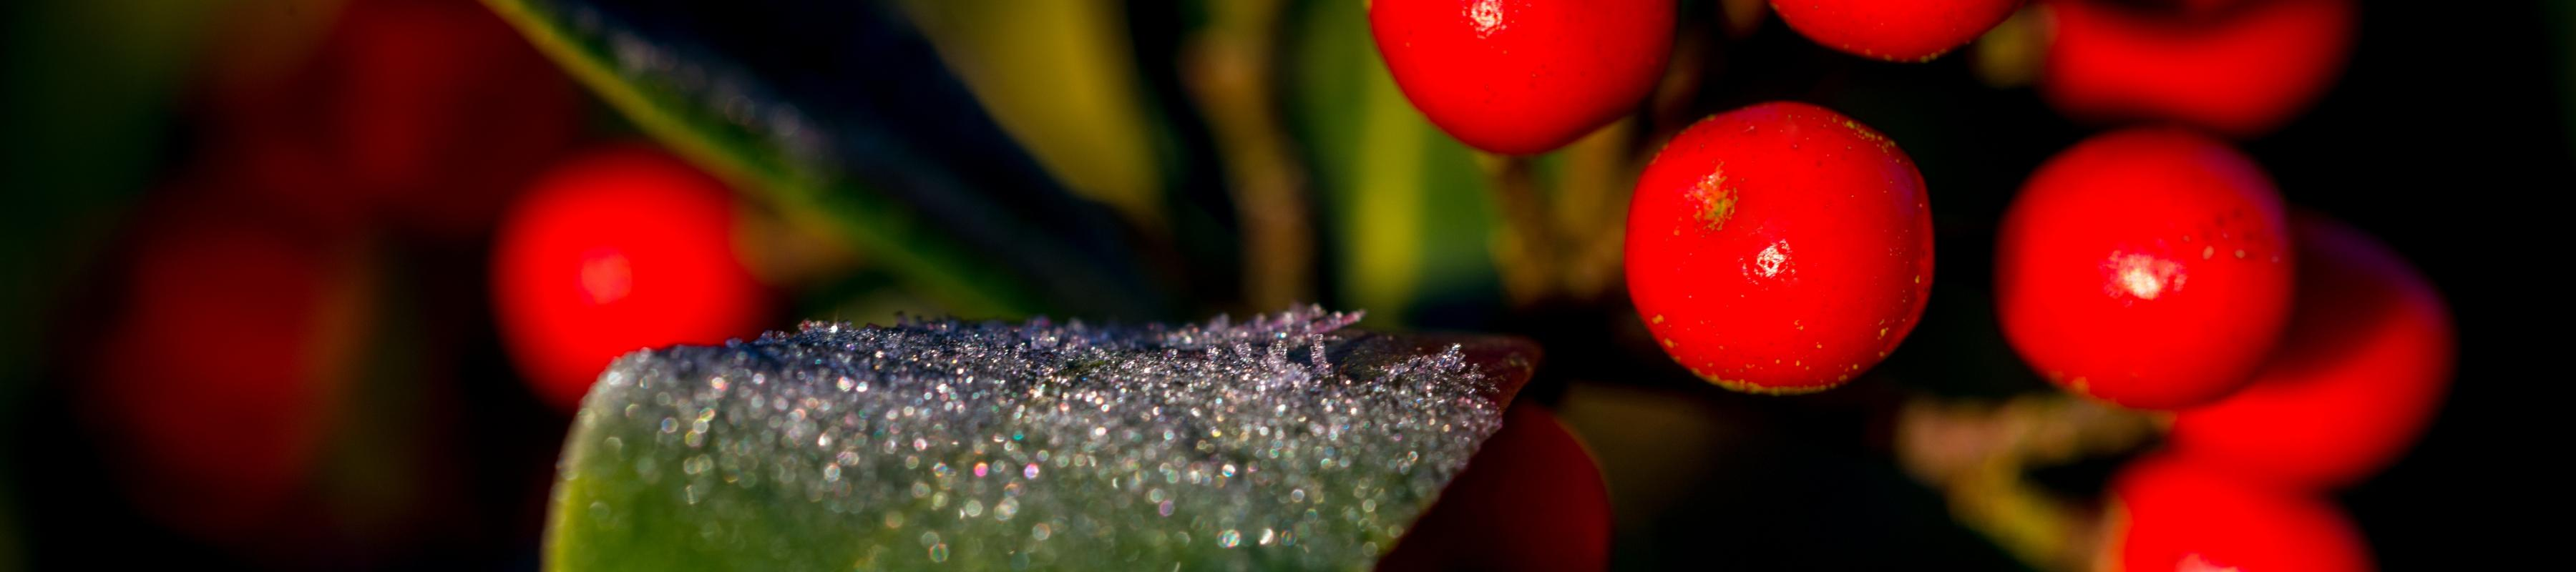 Close up of red winter berries and frosted leaf